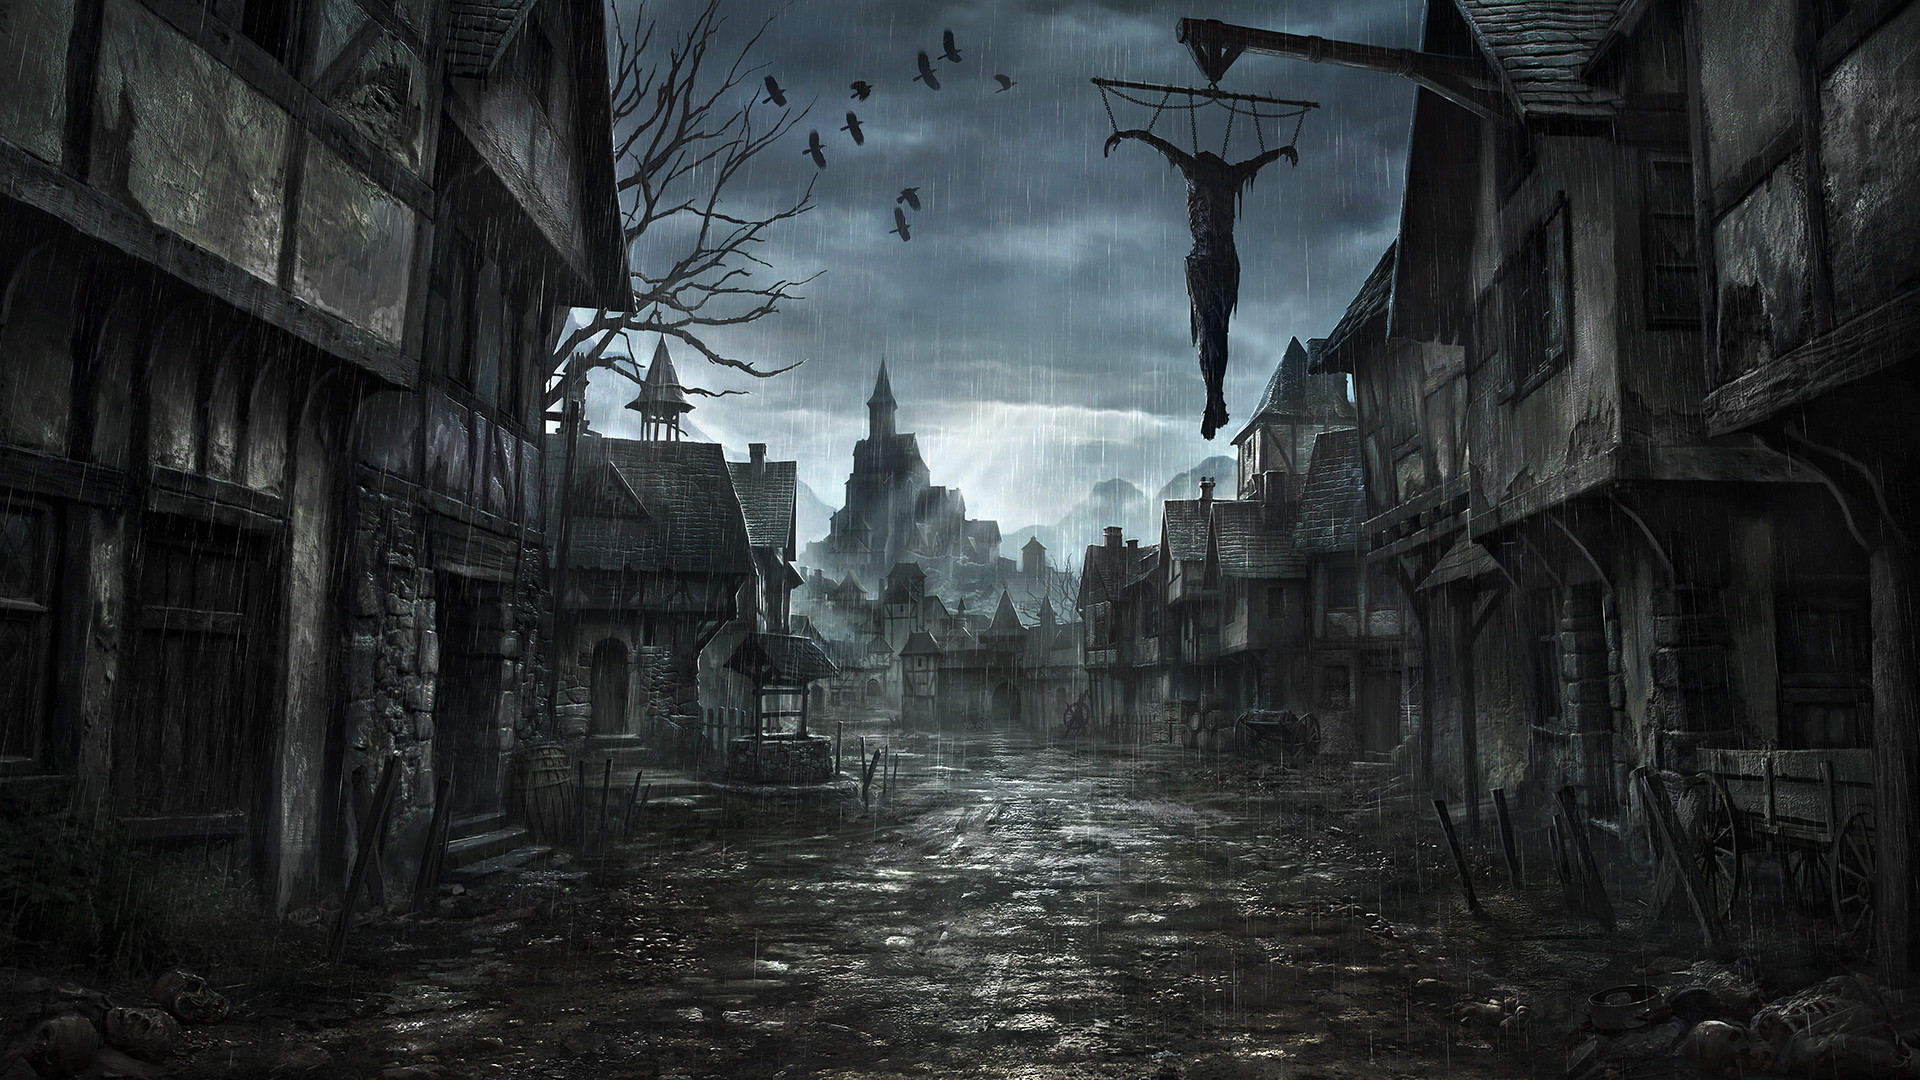 1920x1080 middle-ages jonasdero_deviantart_com jonasdero dark horror scary creepy  spooky cities buildings architecture cg digital-